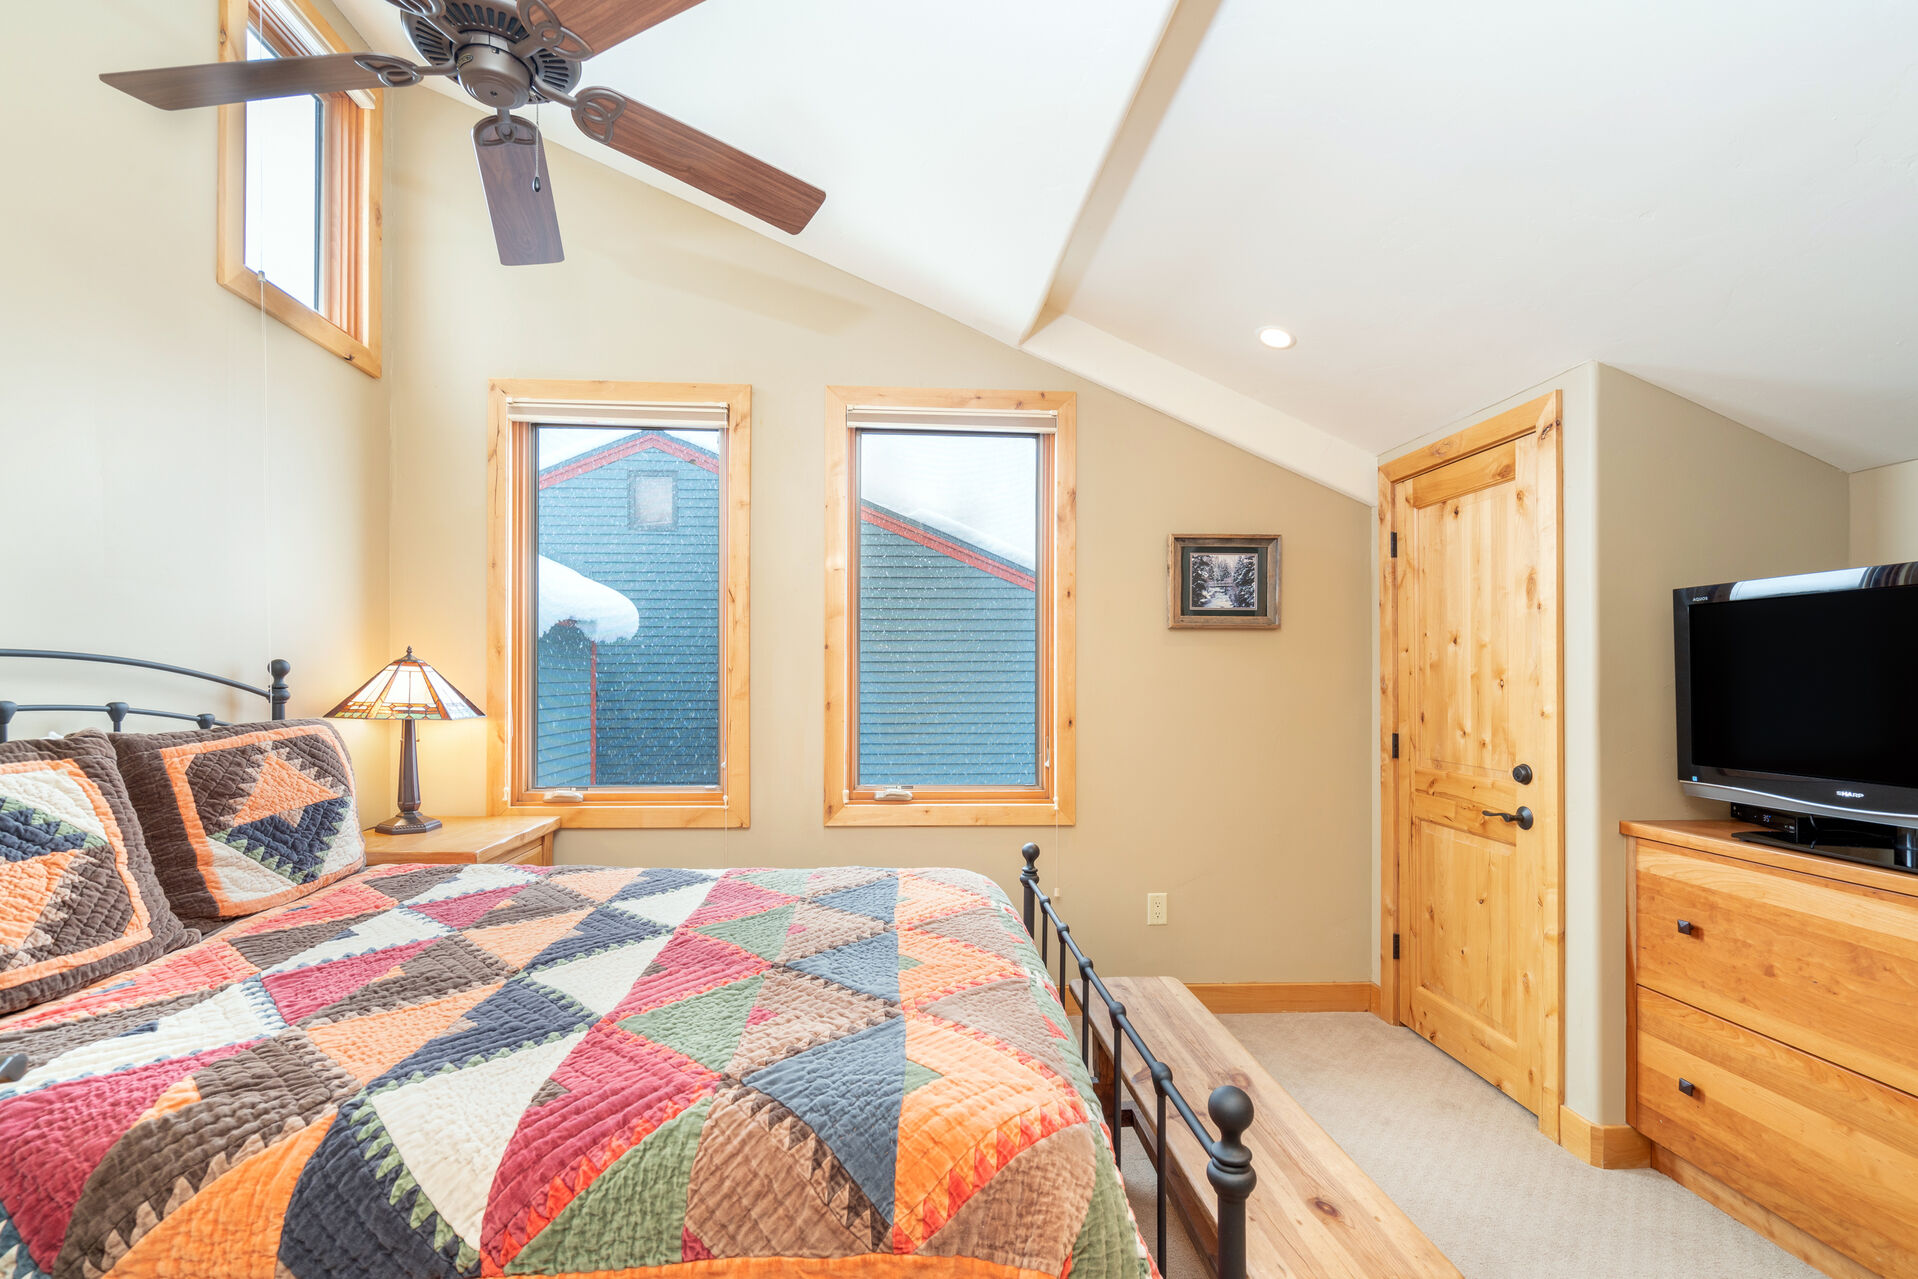 Bedroom of this 2 bedroom condo in Telluride with ceiling fan, dresser, and TV around a large bed.